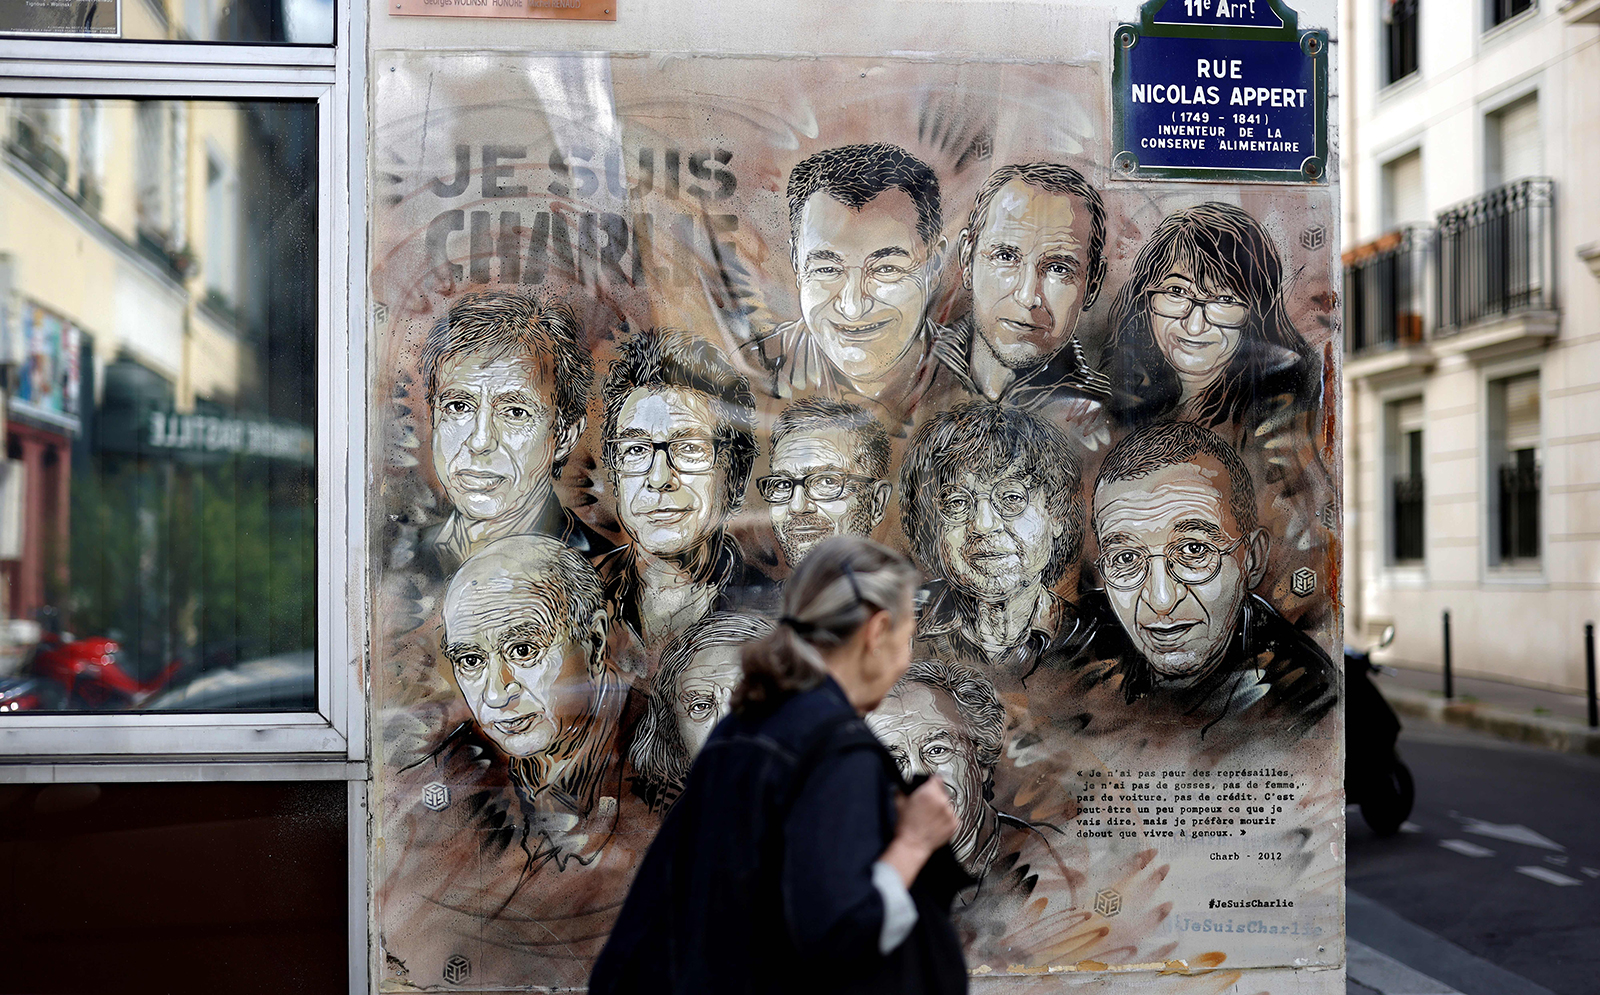 A woman walks past a painting on August 31 in tribute to those killed in the Charlie Hebdo attack by jihadist gunmen in January 2015, in Paris. (Thomas Coex/AFP/Getty Images via CNN Wire)